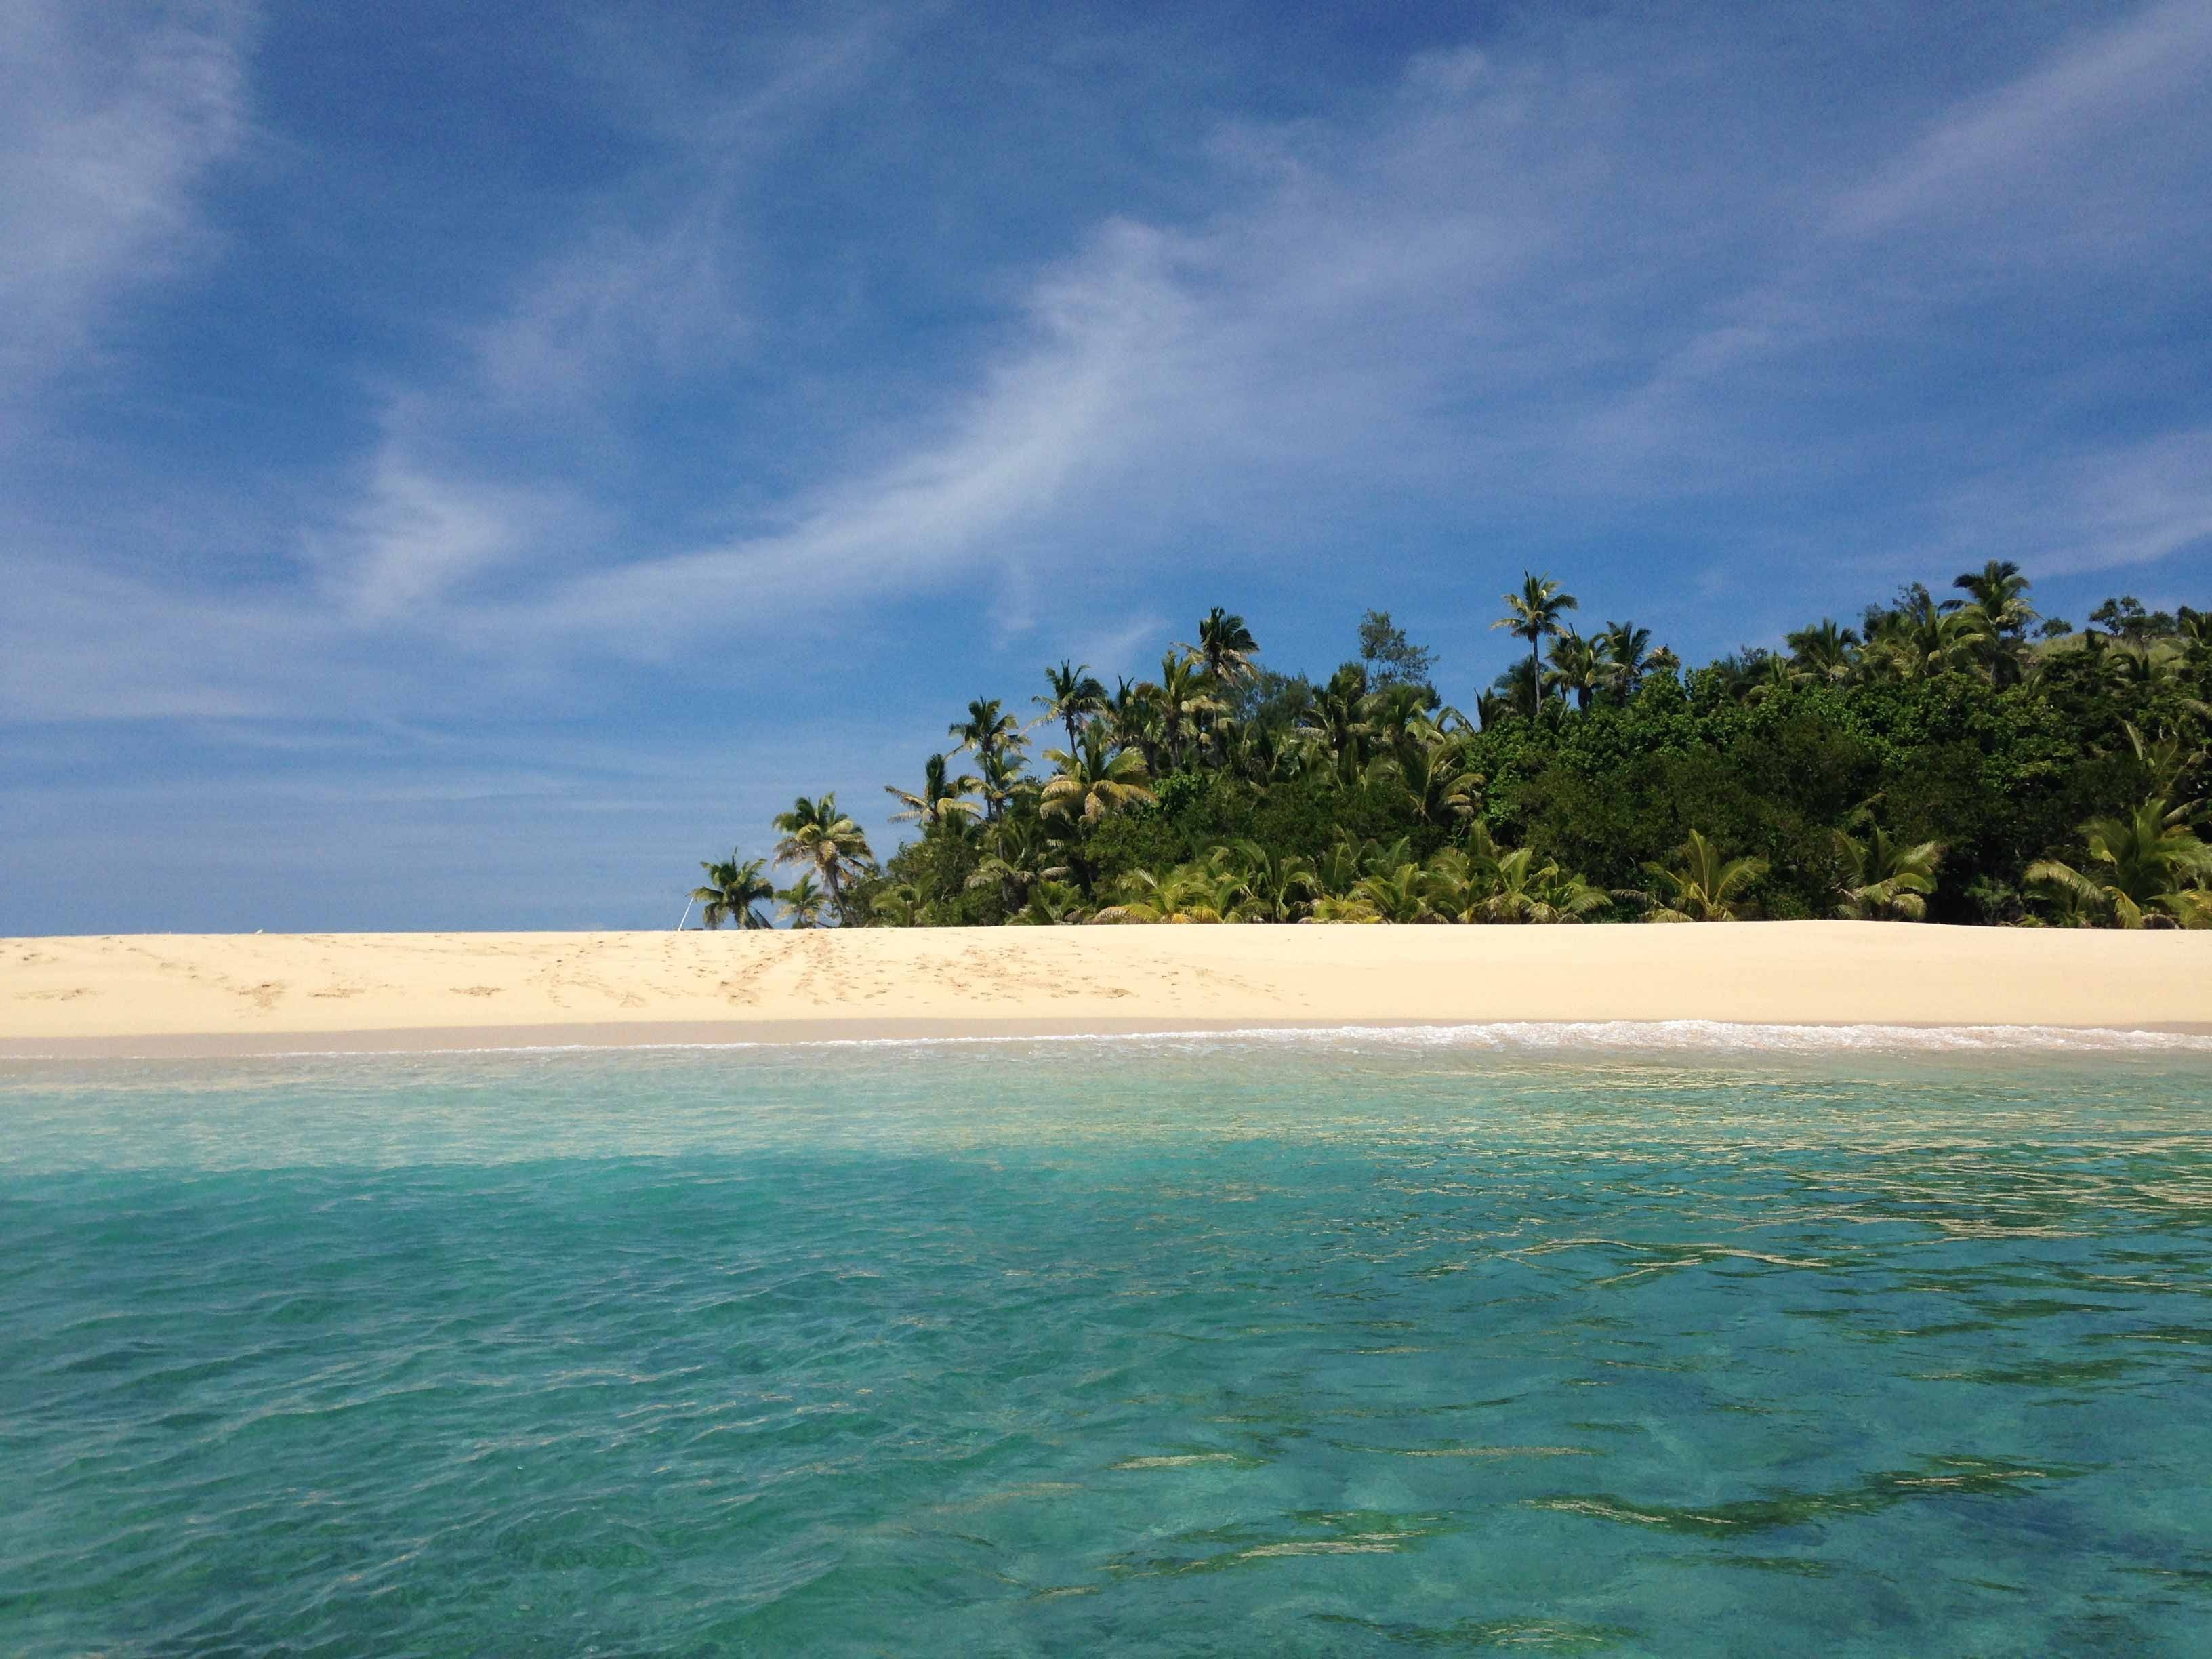 The bright white sand, blue ocean and dense shrubbery of Yasawa